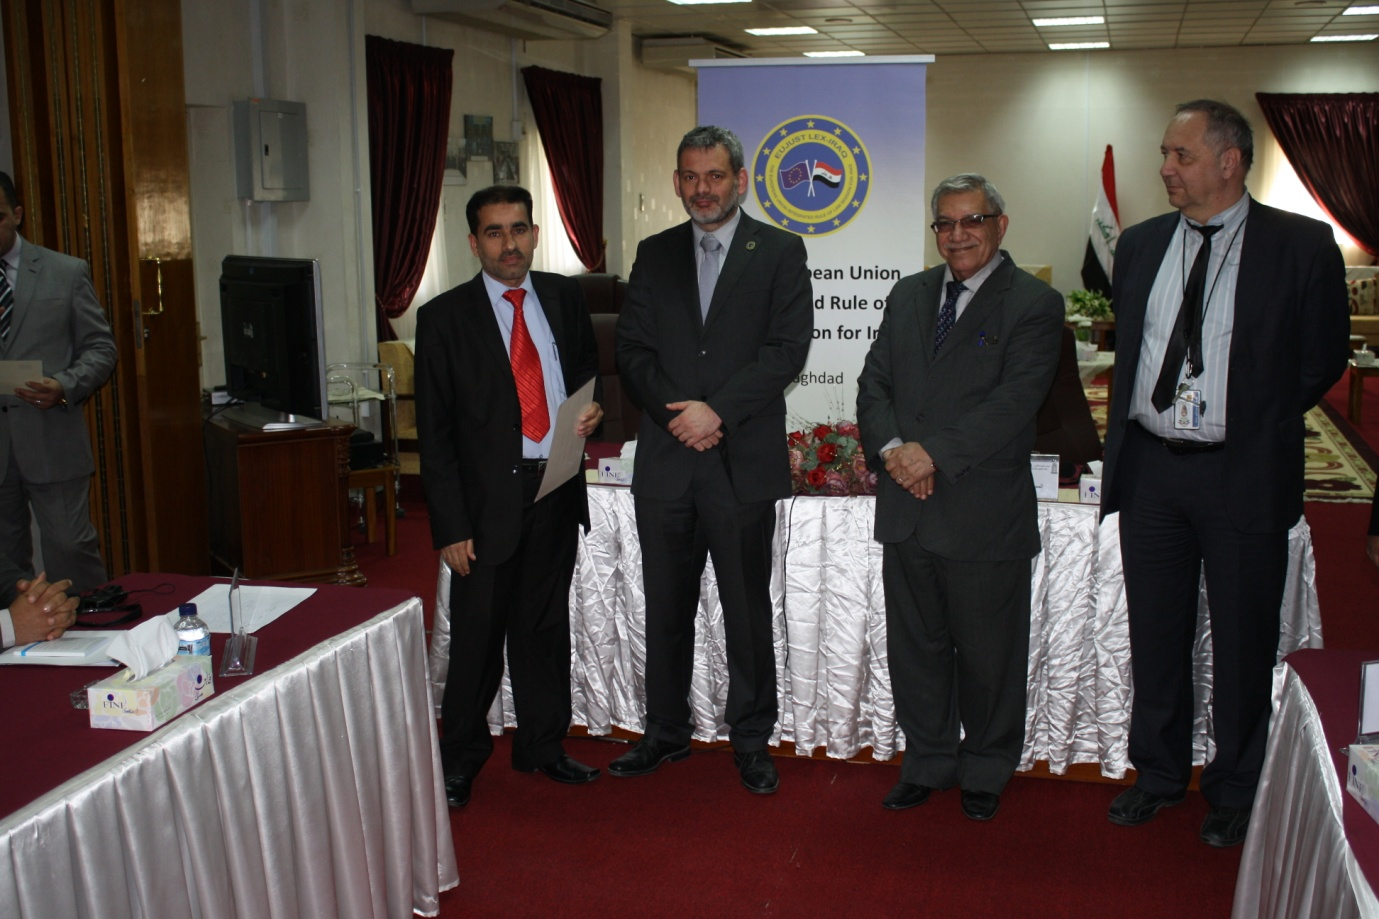 A participant receiving his certificate from EJL-I Head of Mission, László Huszár, watched by Judge Fathi al-Juari and EJL-I judiciary team leader Anton Girginov